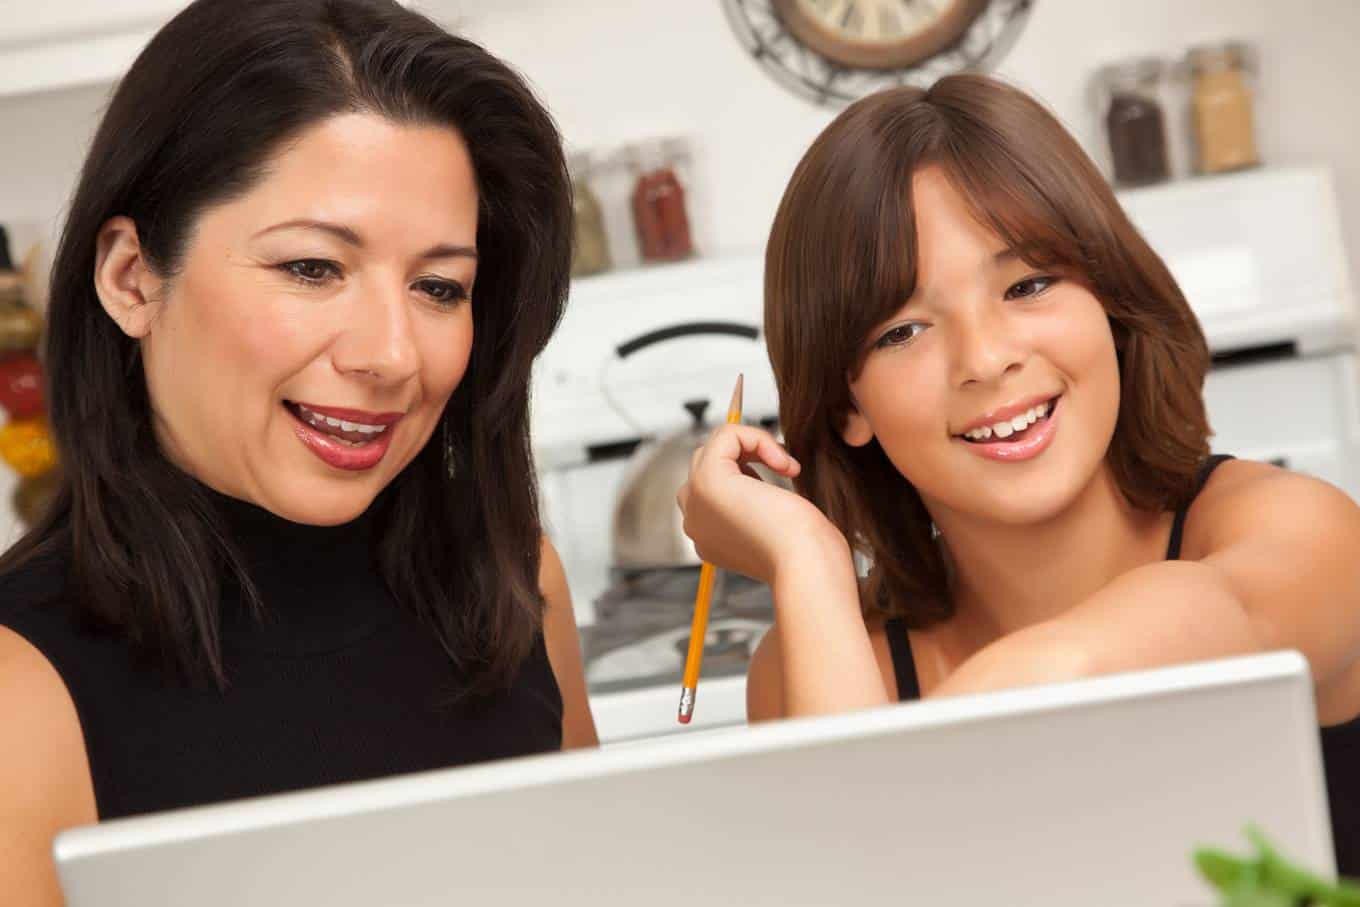 Mom and daughter looking at computer together